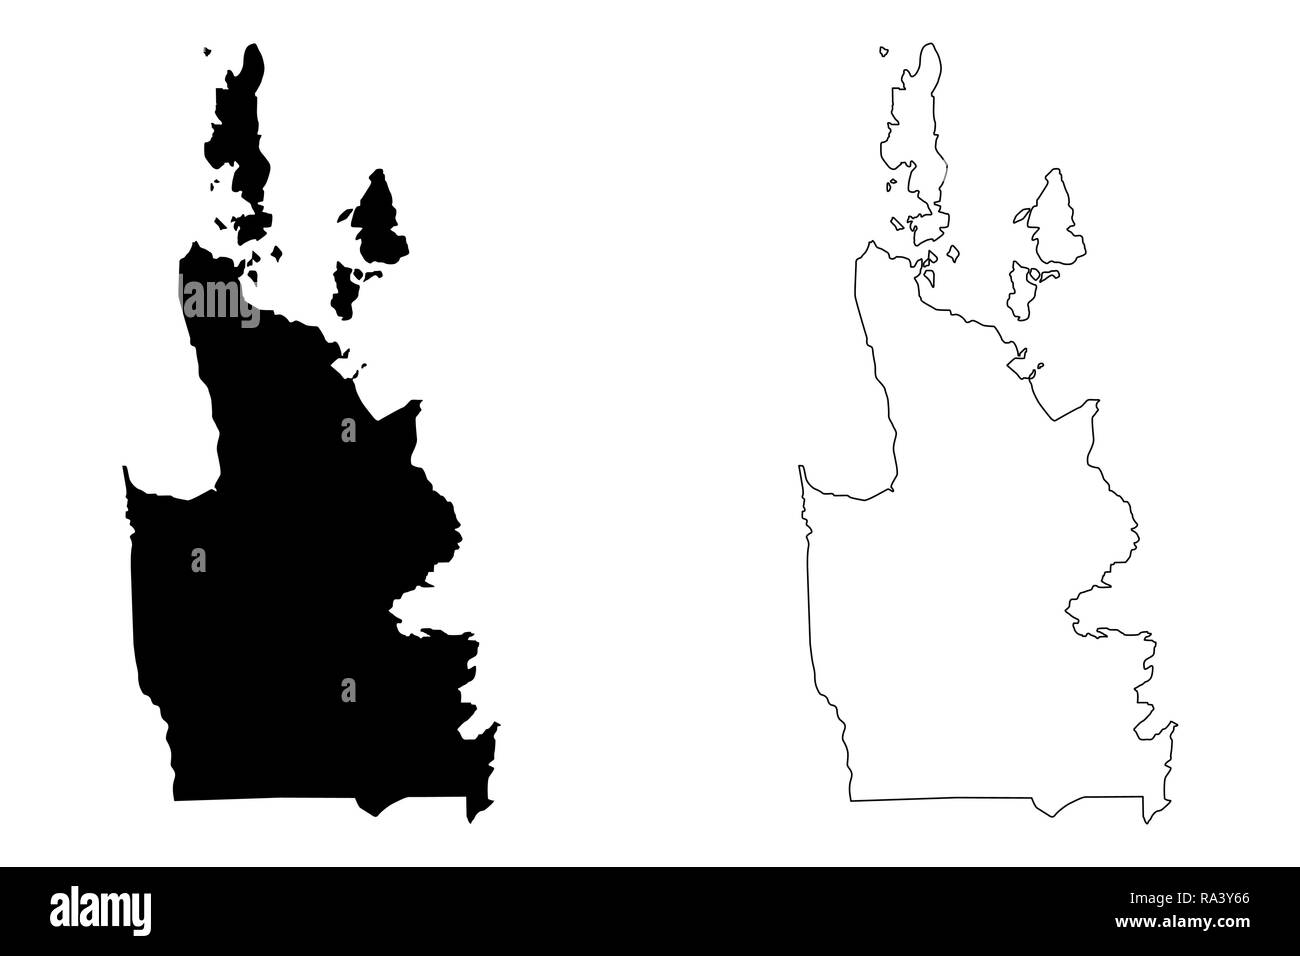 The Philippines Map Black and White Stock Photos & Images - Alamy